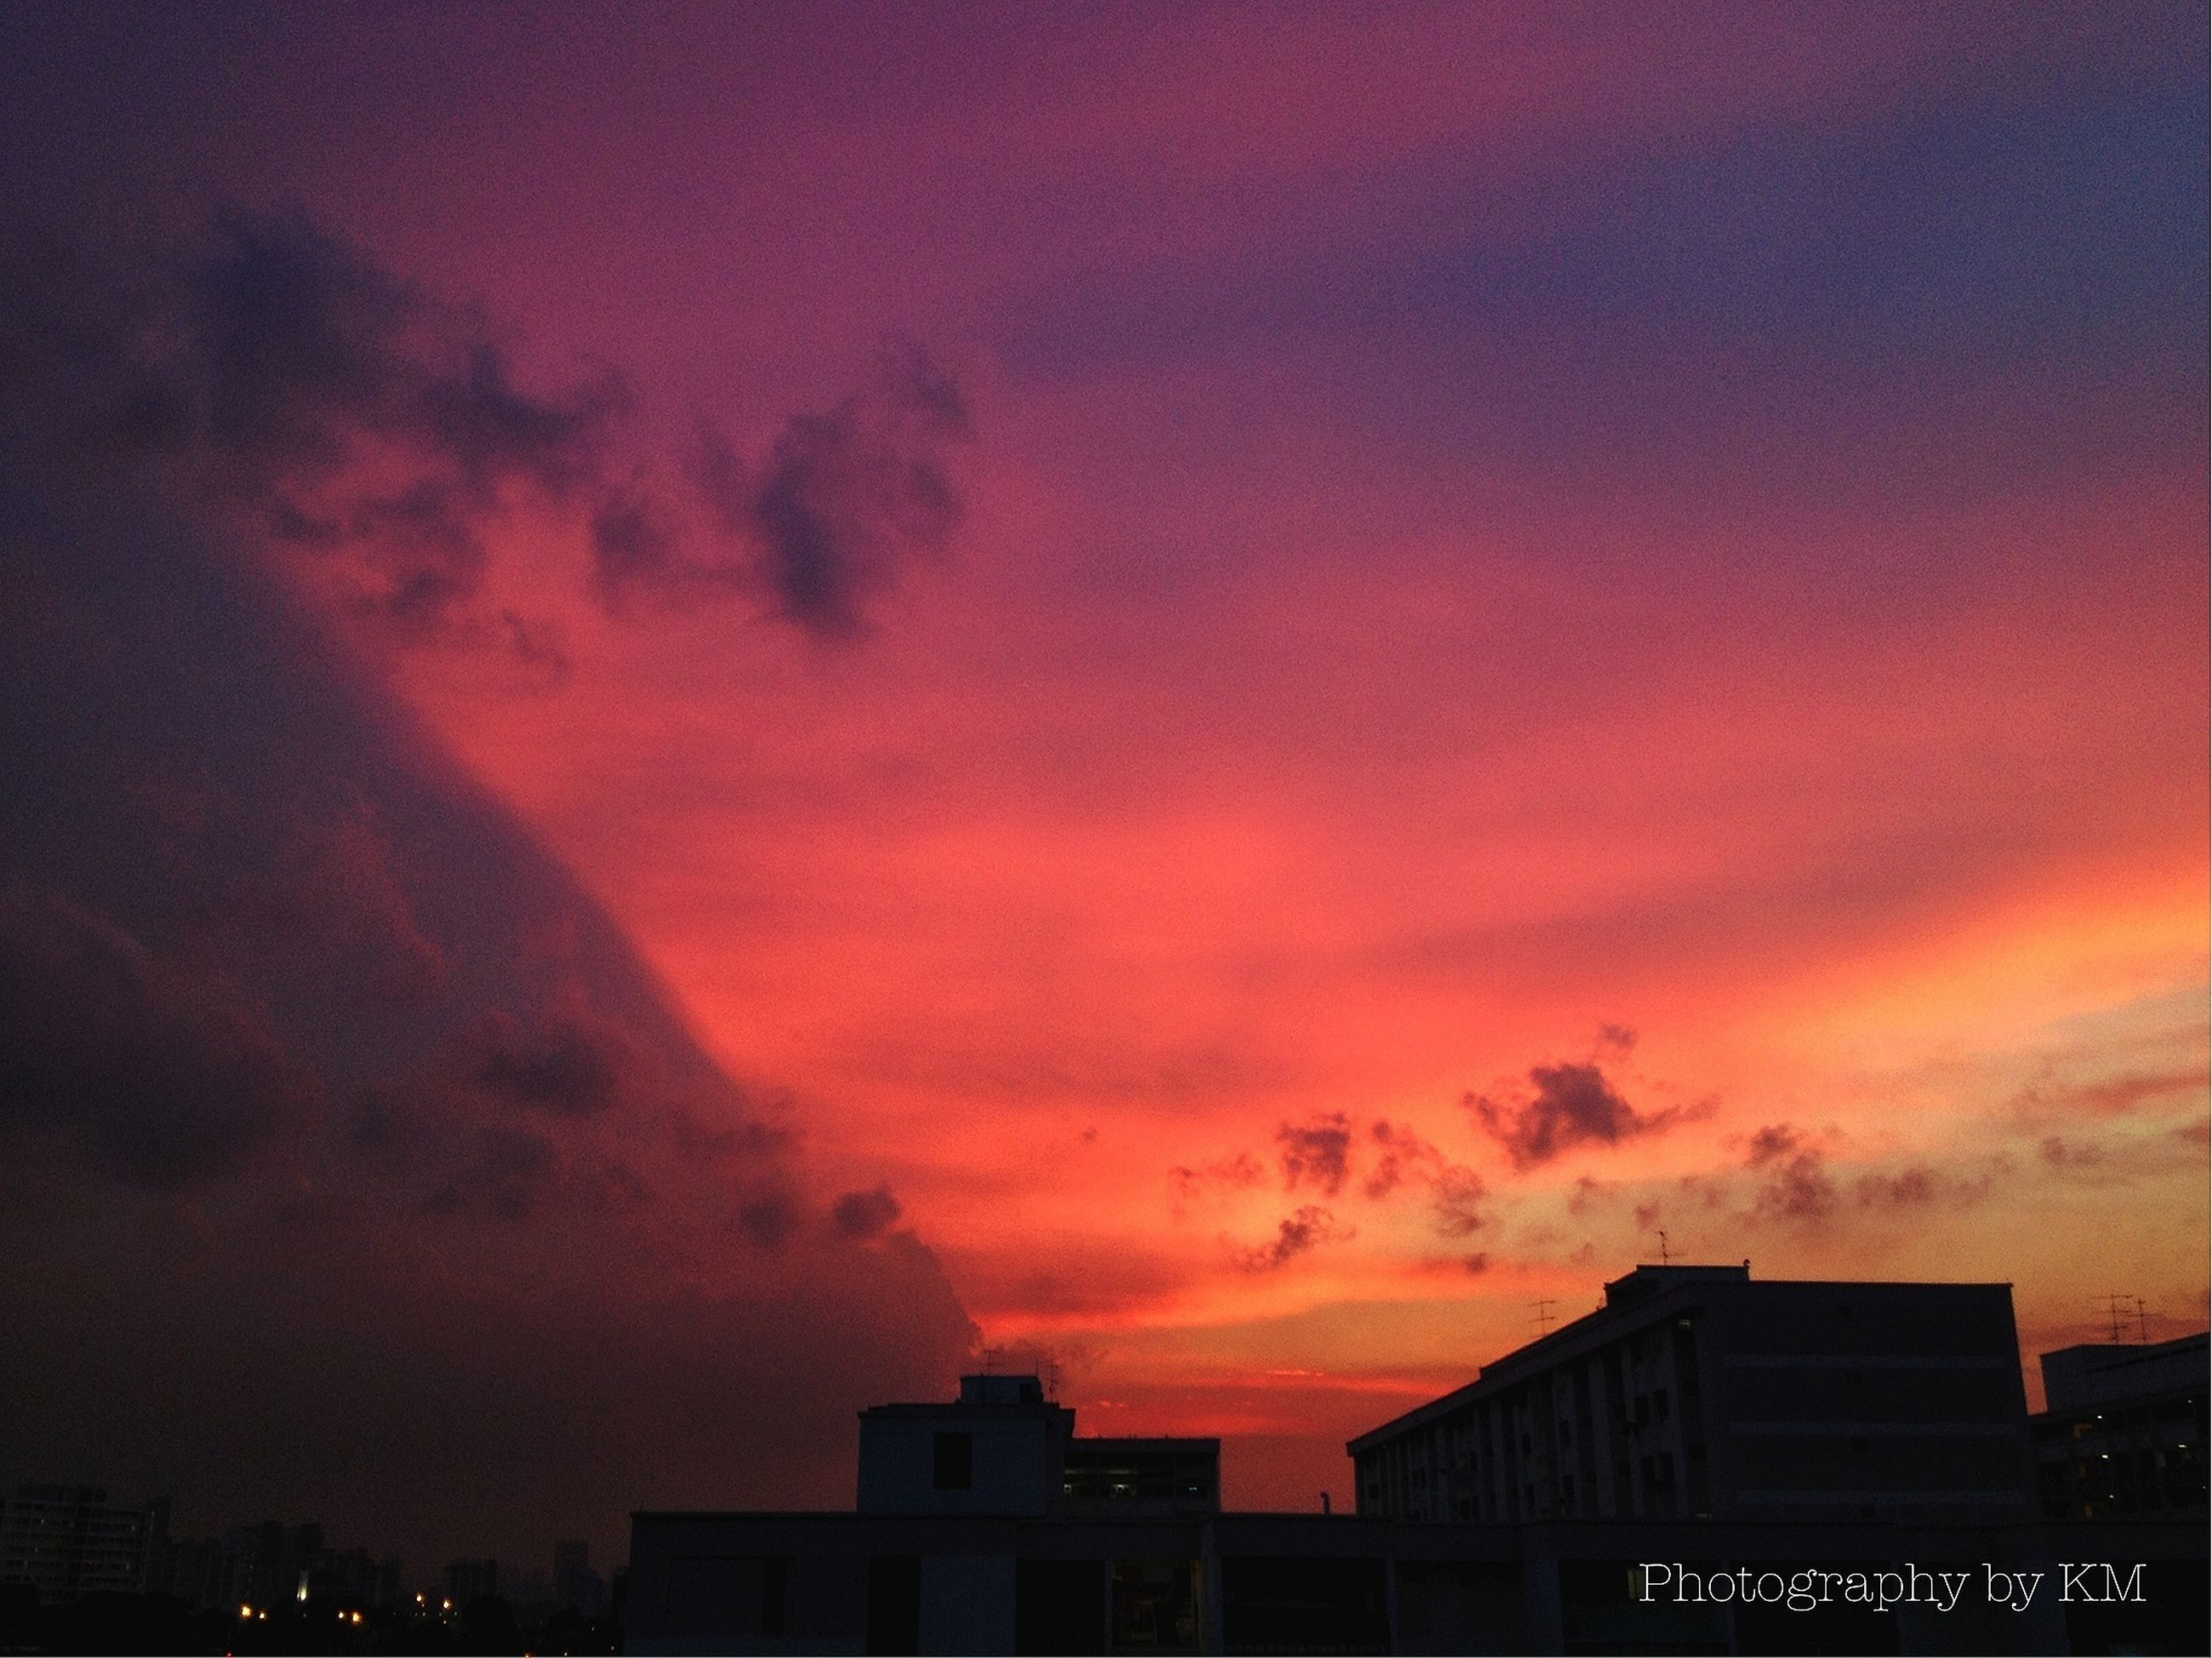 sunset, architecture, building exterior, sky, built structure, orange color, silhouette, cloud - sky, dramatic sky, low angle view, beauty in nature, cloudy, city, scenics, cloud, nature, weather, residential building, overcast, residential structure